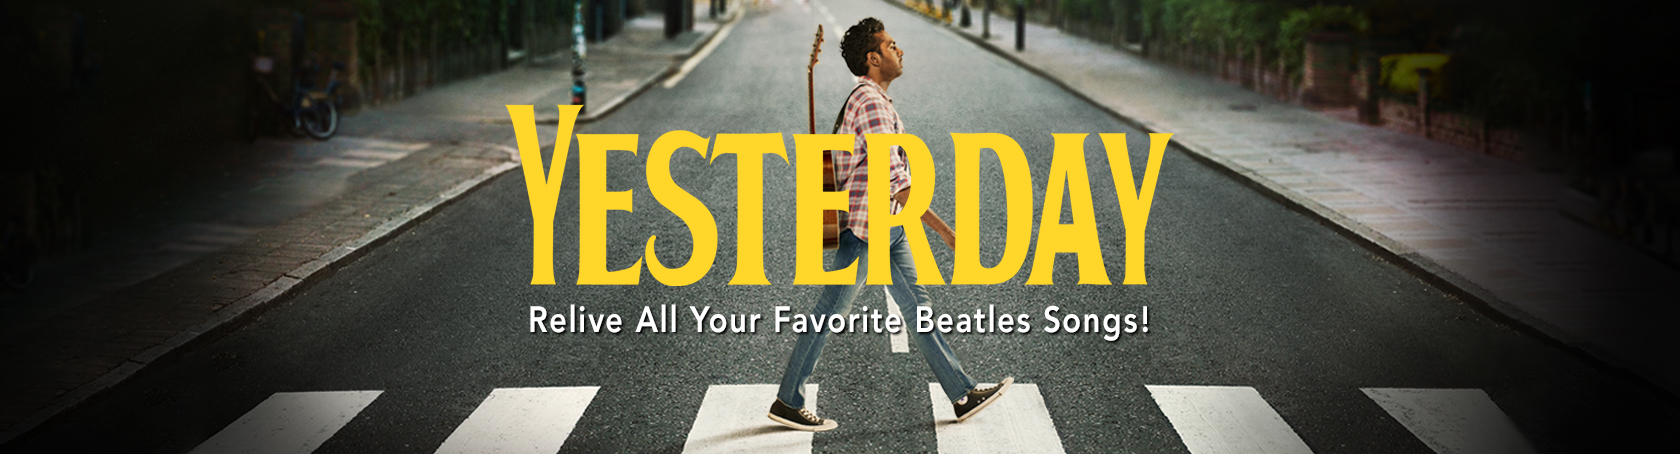 Yesterday: Revisit the Music of the Beatles